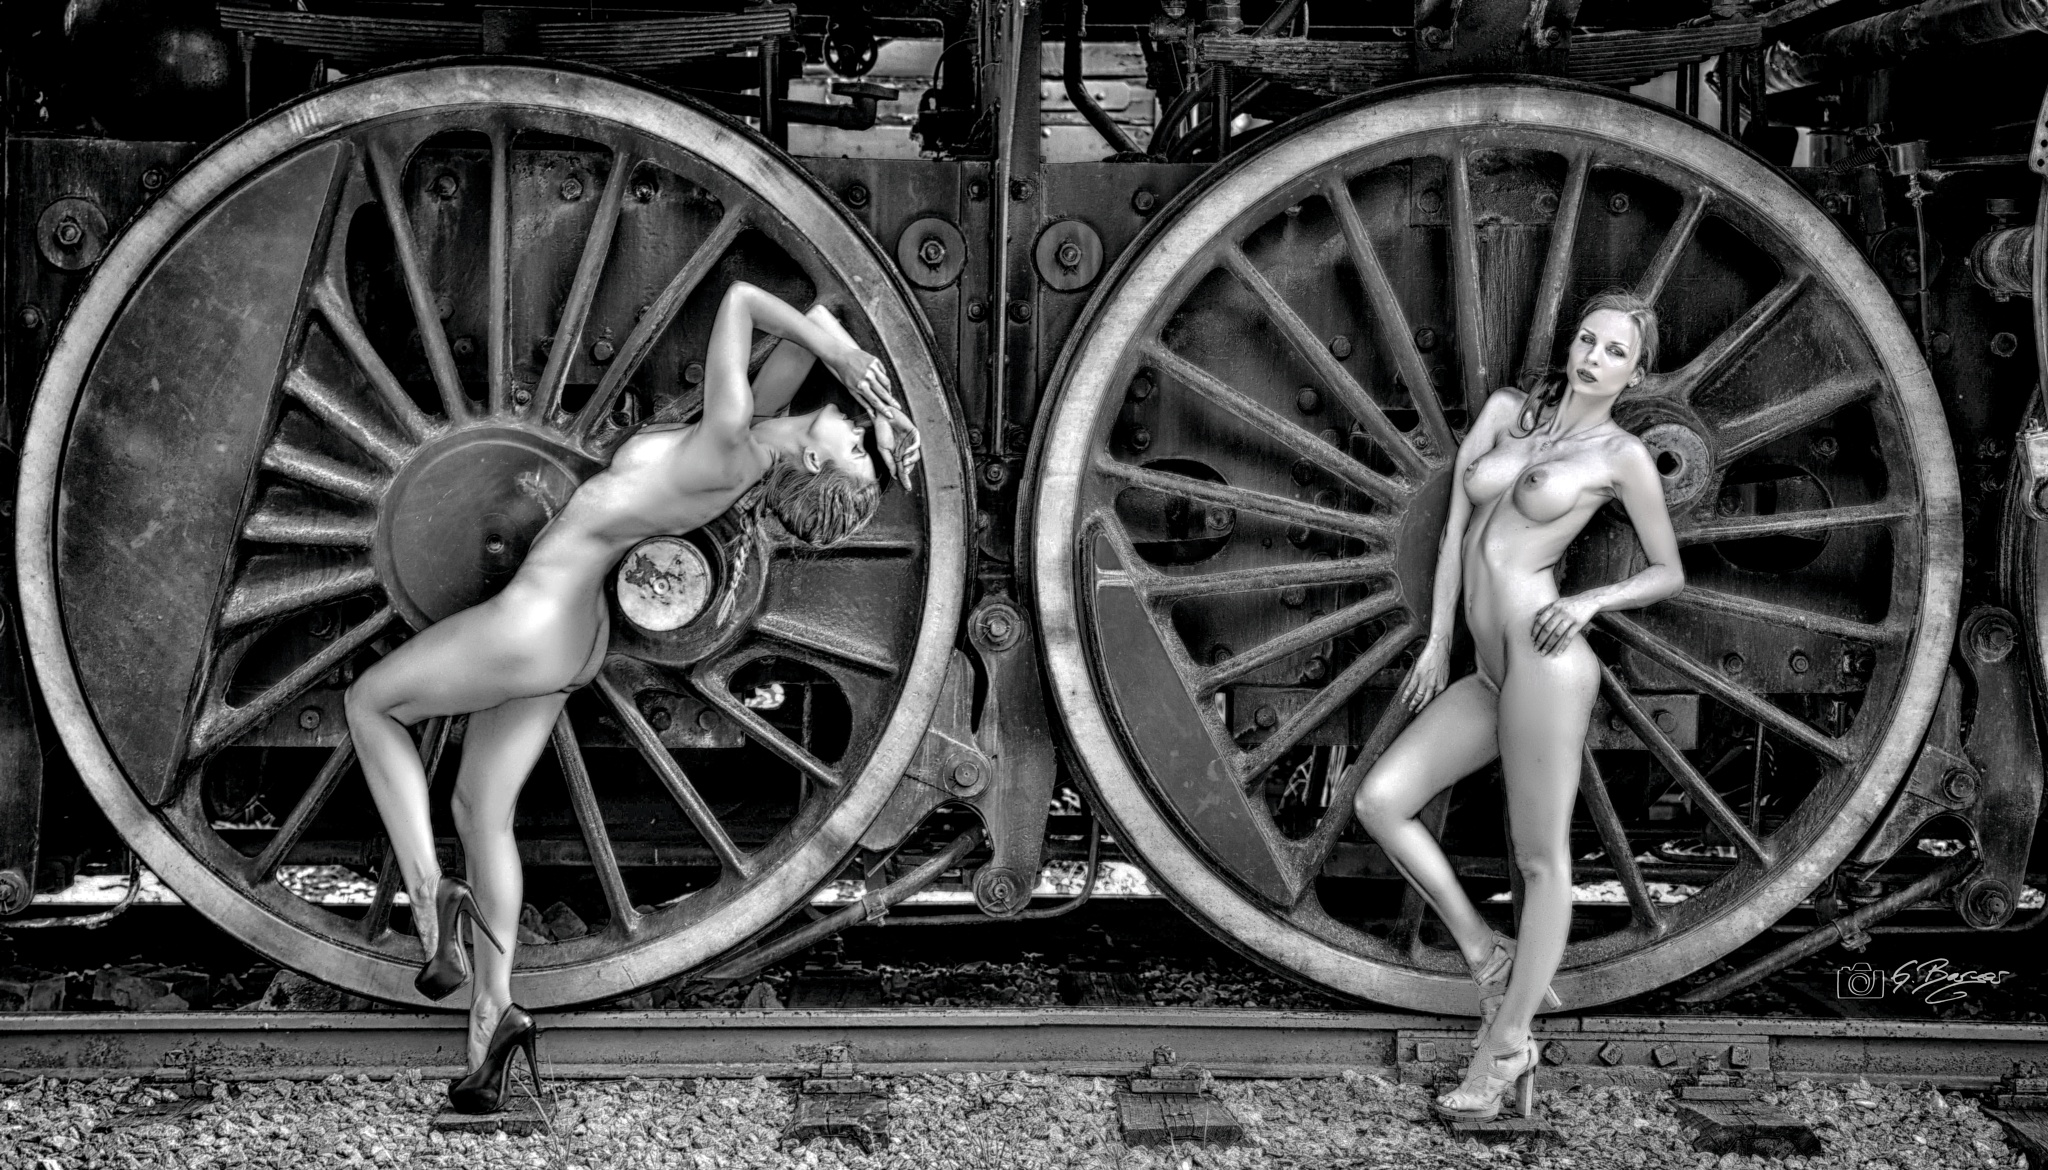 Playin with the wheels by Gerald Berger